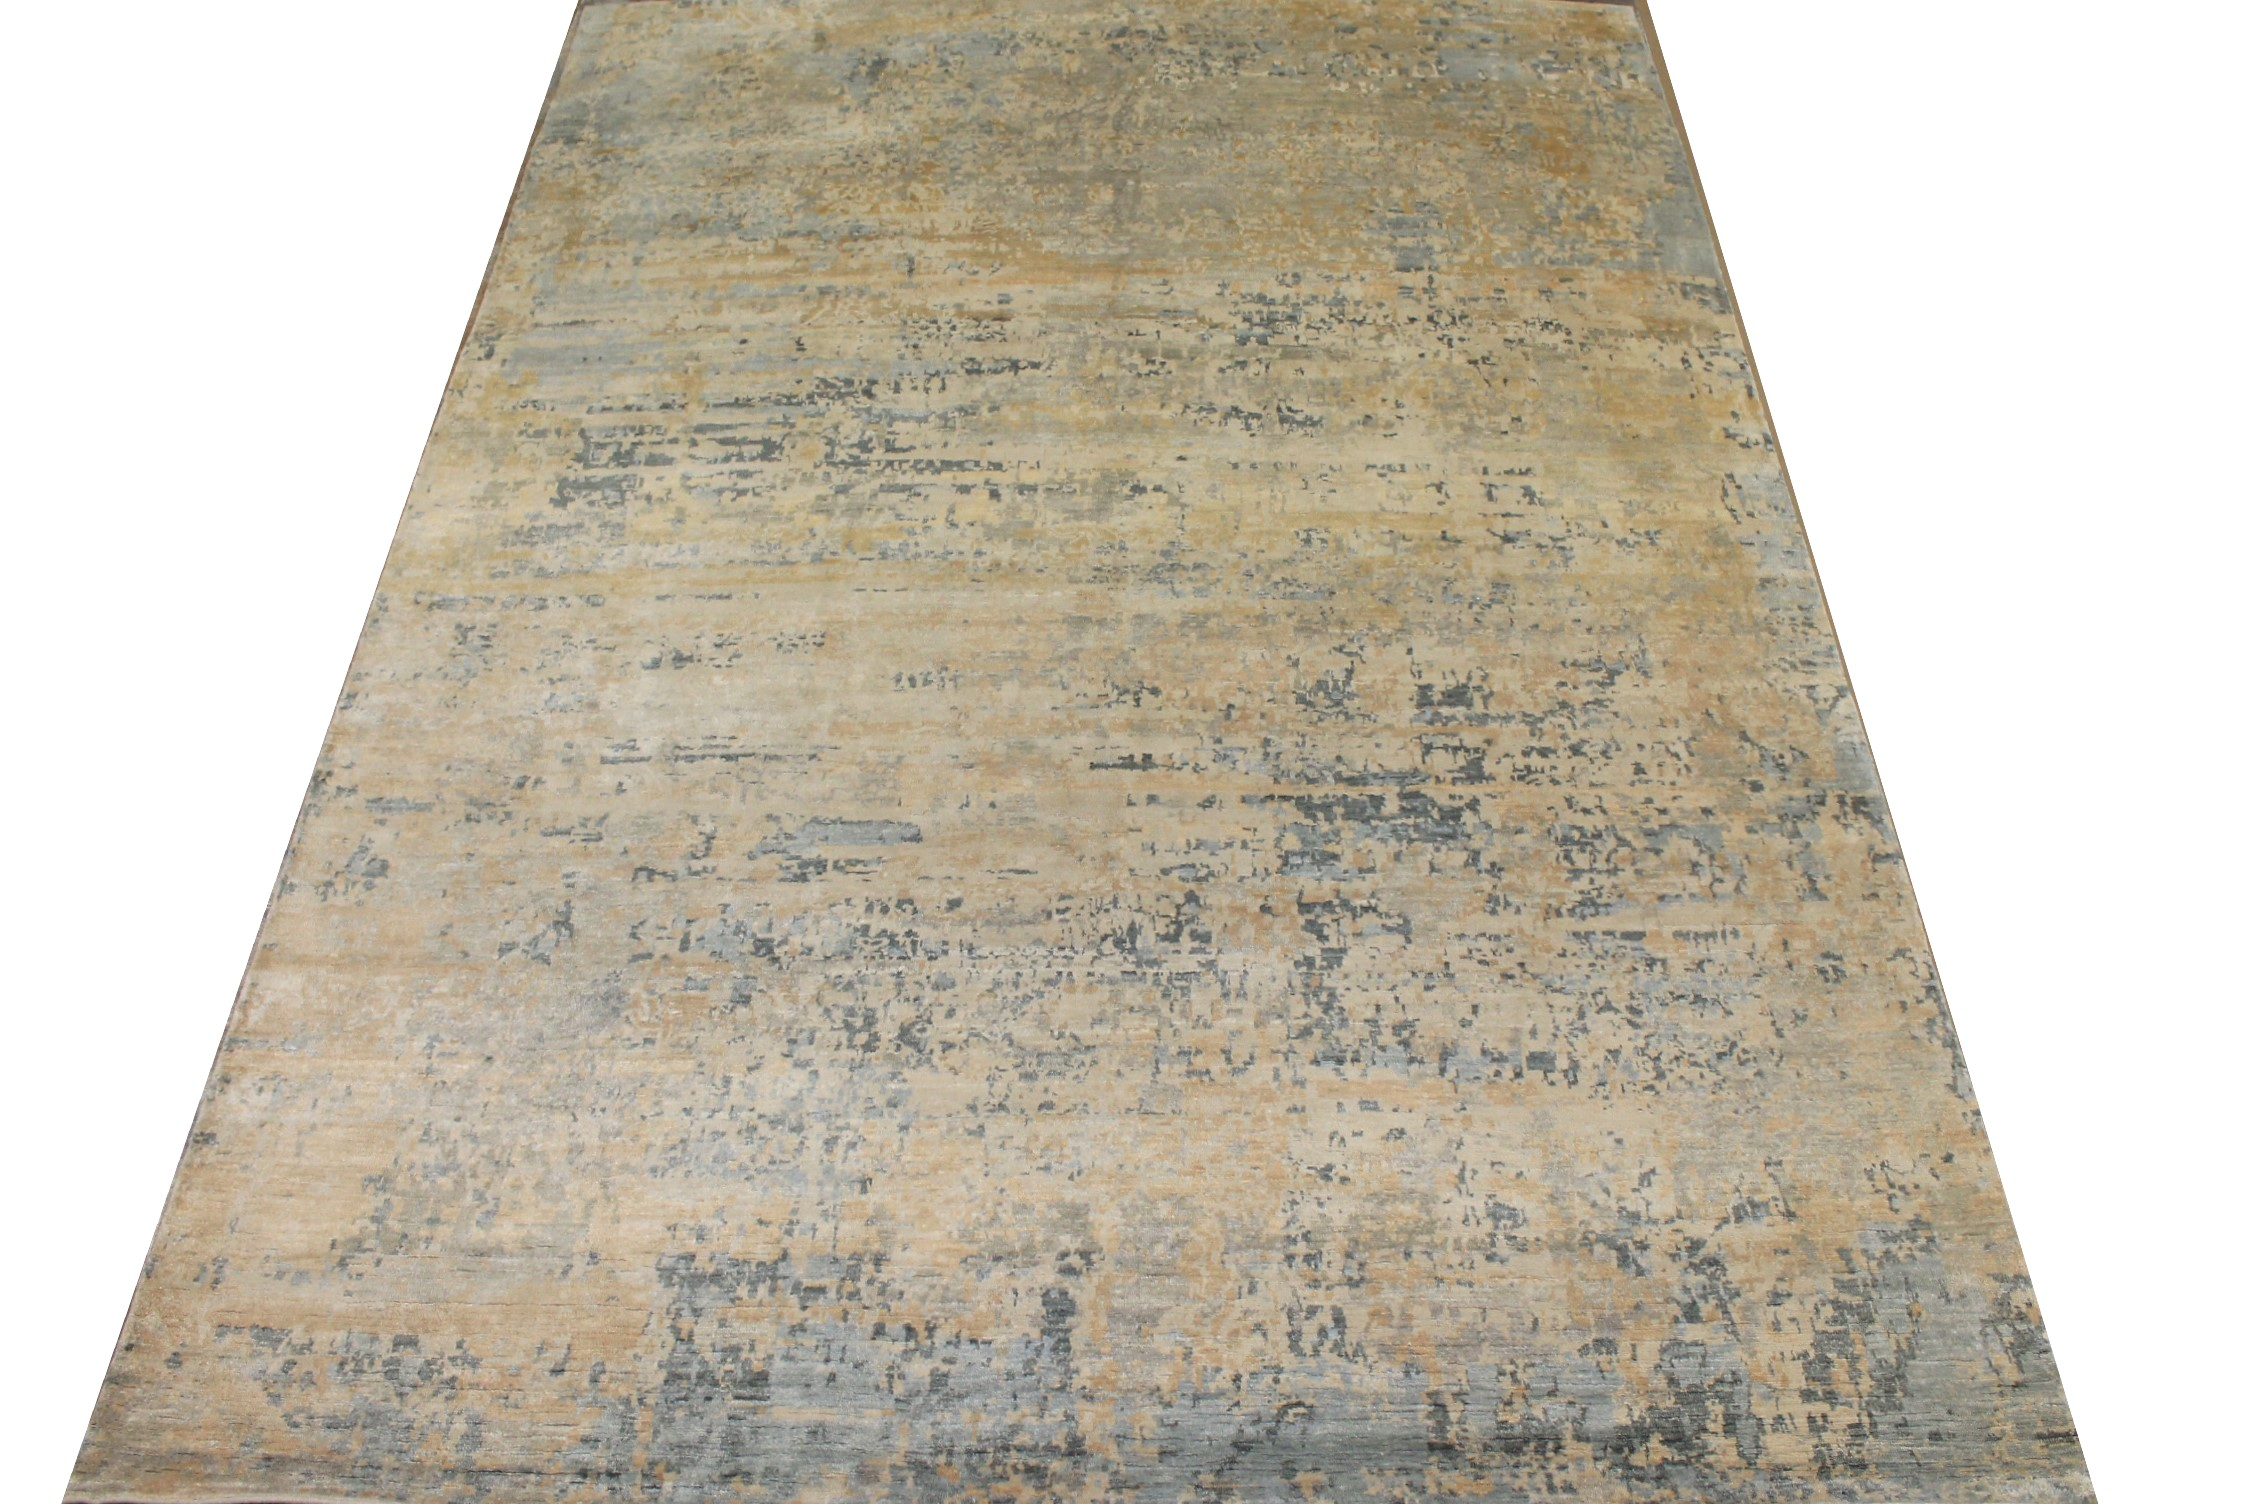 9x12 Modern Hand Knotted Wool & Viscose Area Rug - MR025452